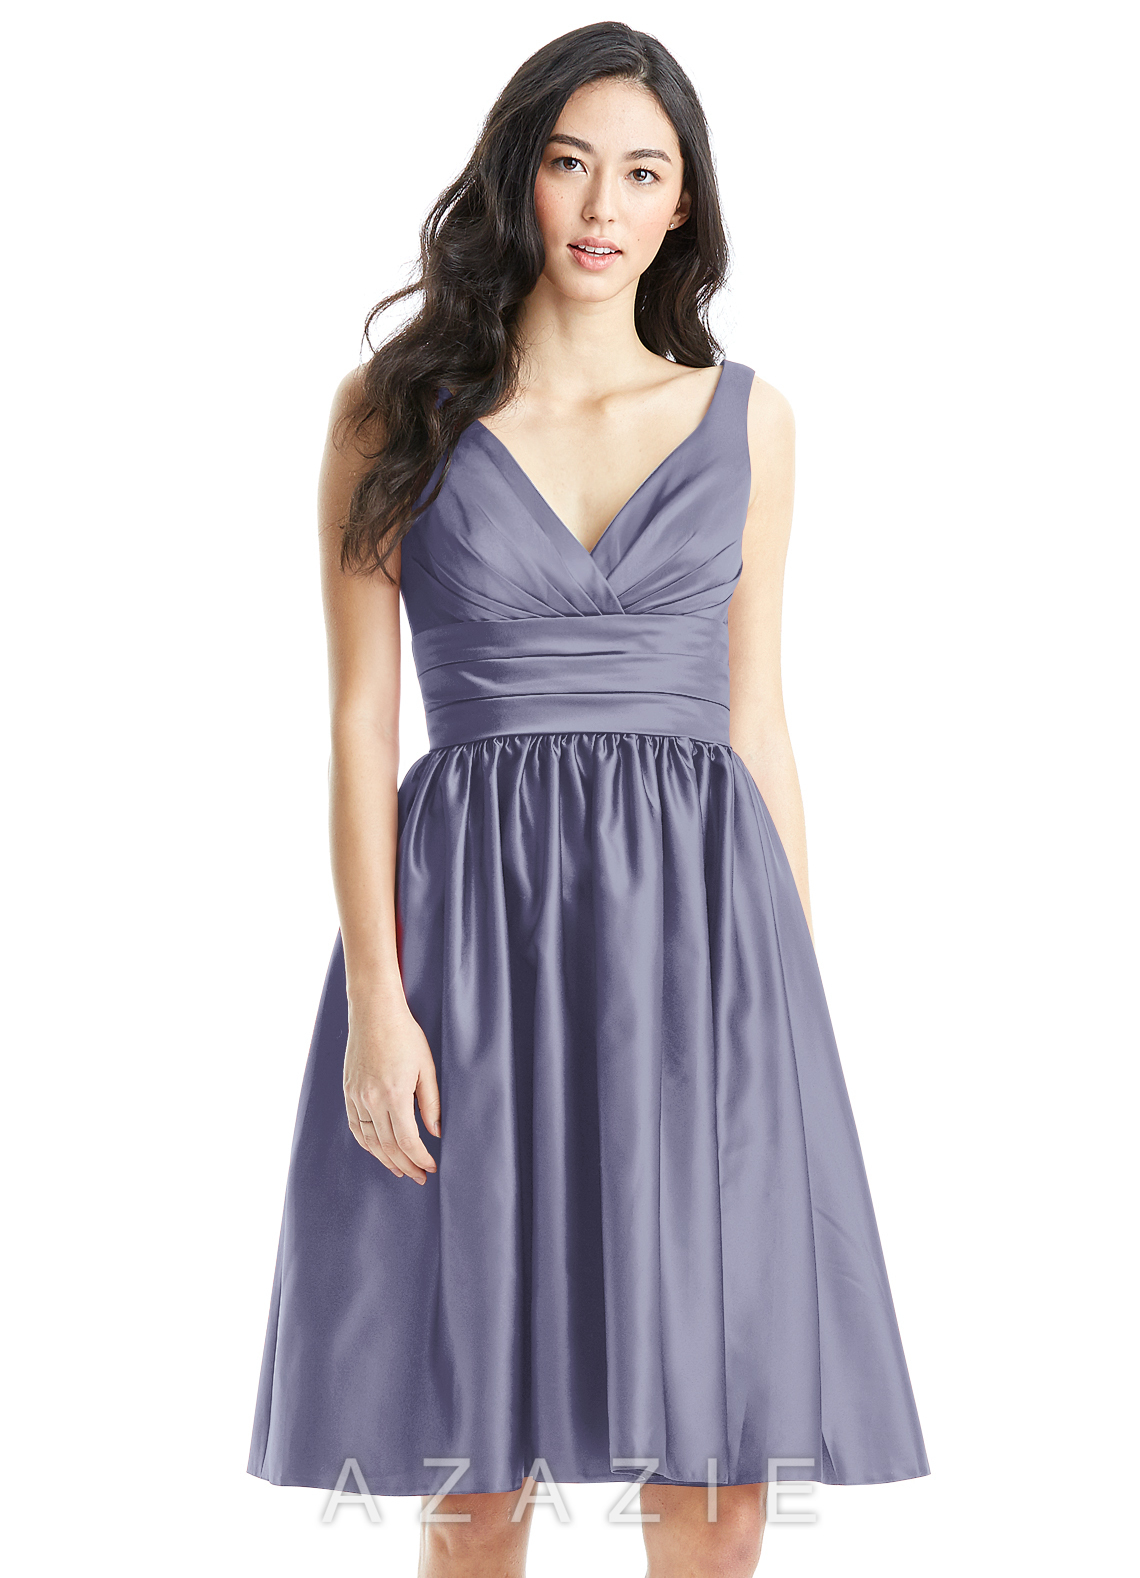 847b06a1f Azazie Alexandra Bridesmaid Dress | Azazie